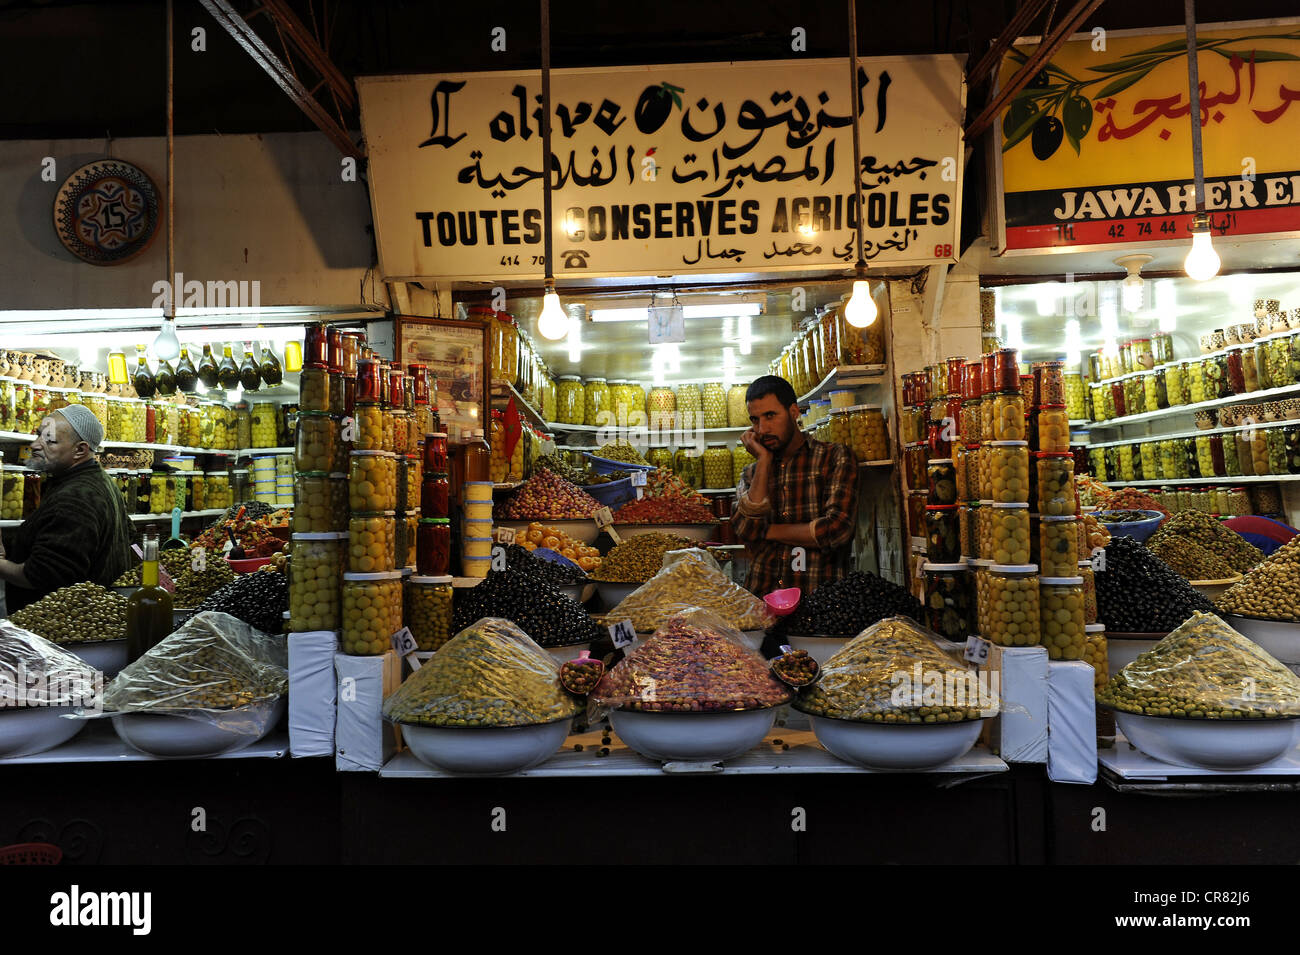 Stall with olives and preserved foods, Jemaa el-Fnaa square, UNESCO World Heritage Site, Marrakech, Morocco, Maghreb - Stock Image